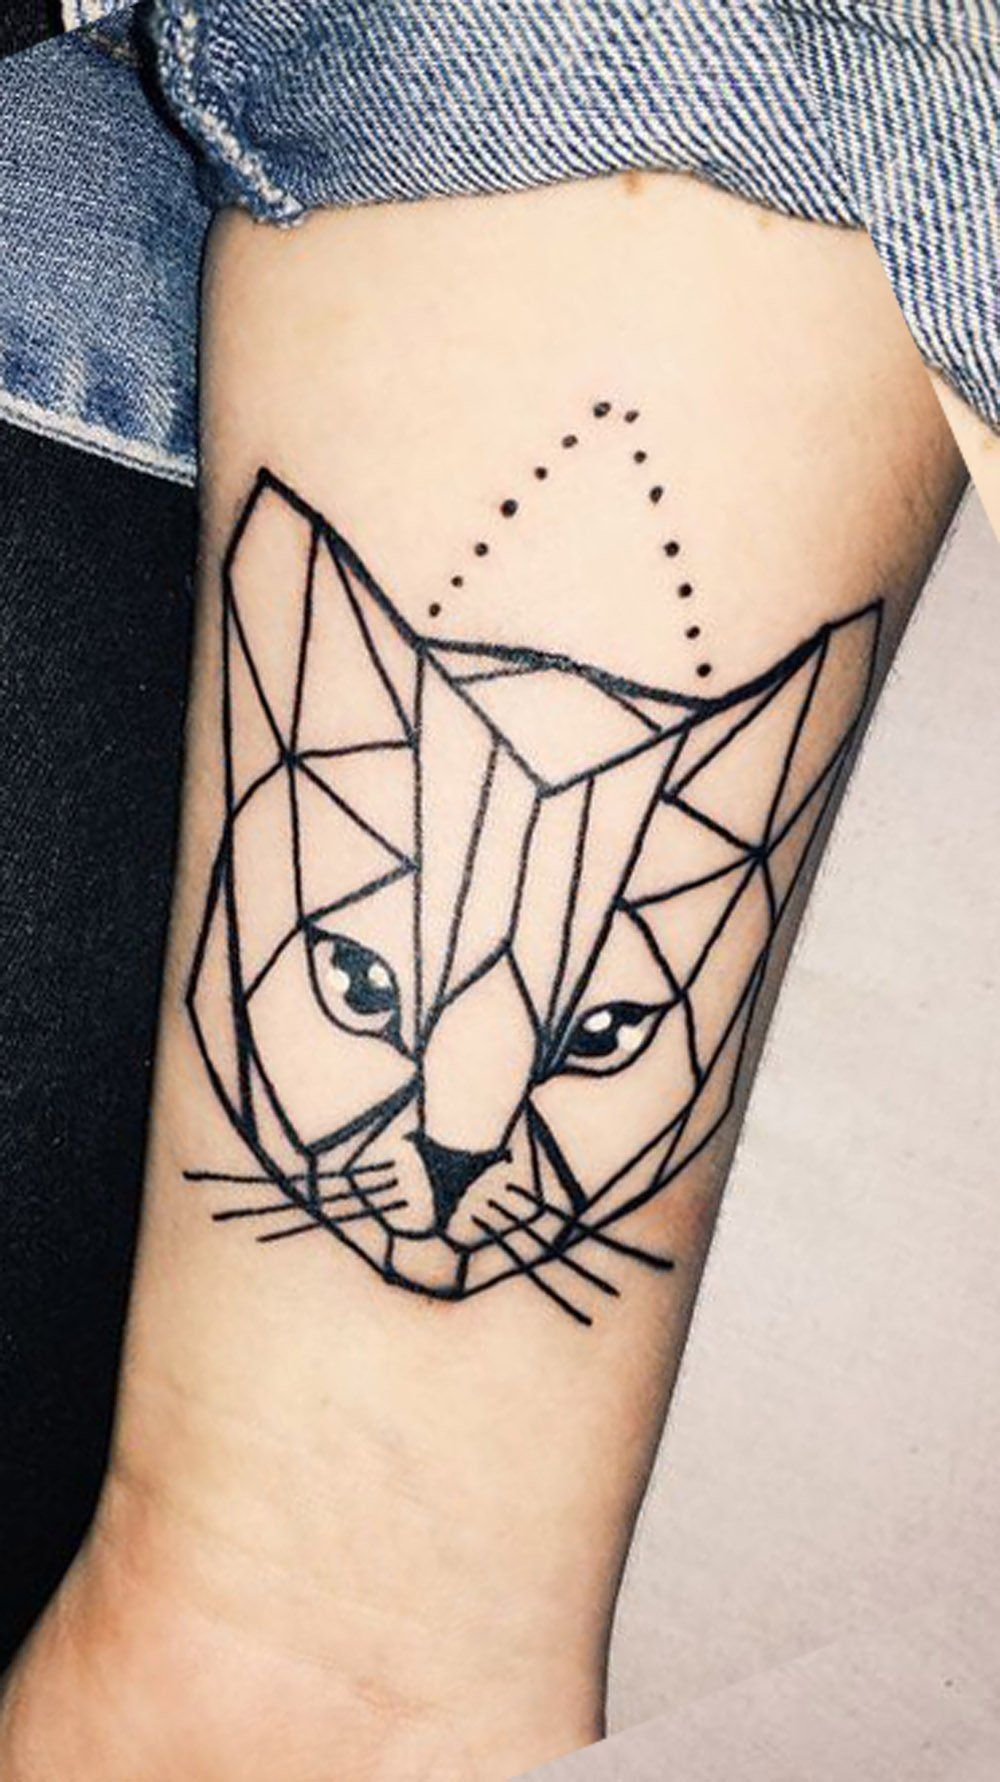 Geometric Cat Forearm Tattoo Ideas For Women Cool And Unique Arm Wrist Tat Www Mybodiart Com Geometric Cat Geometric Cat Tattoo Cat Tattoo Simple